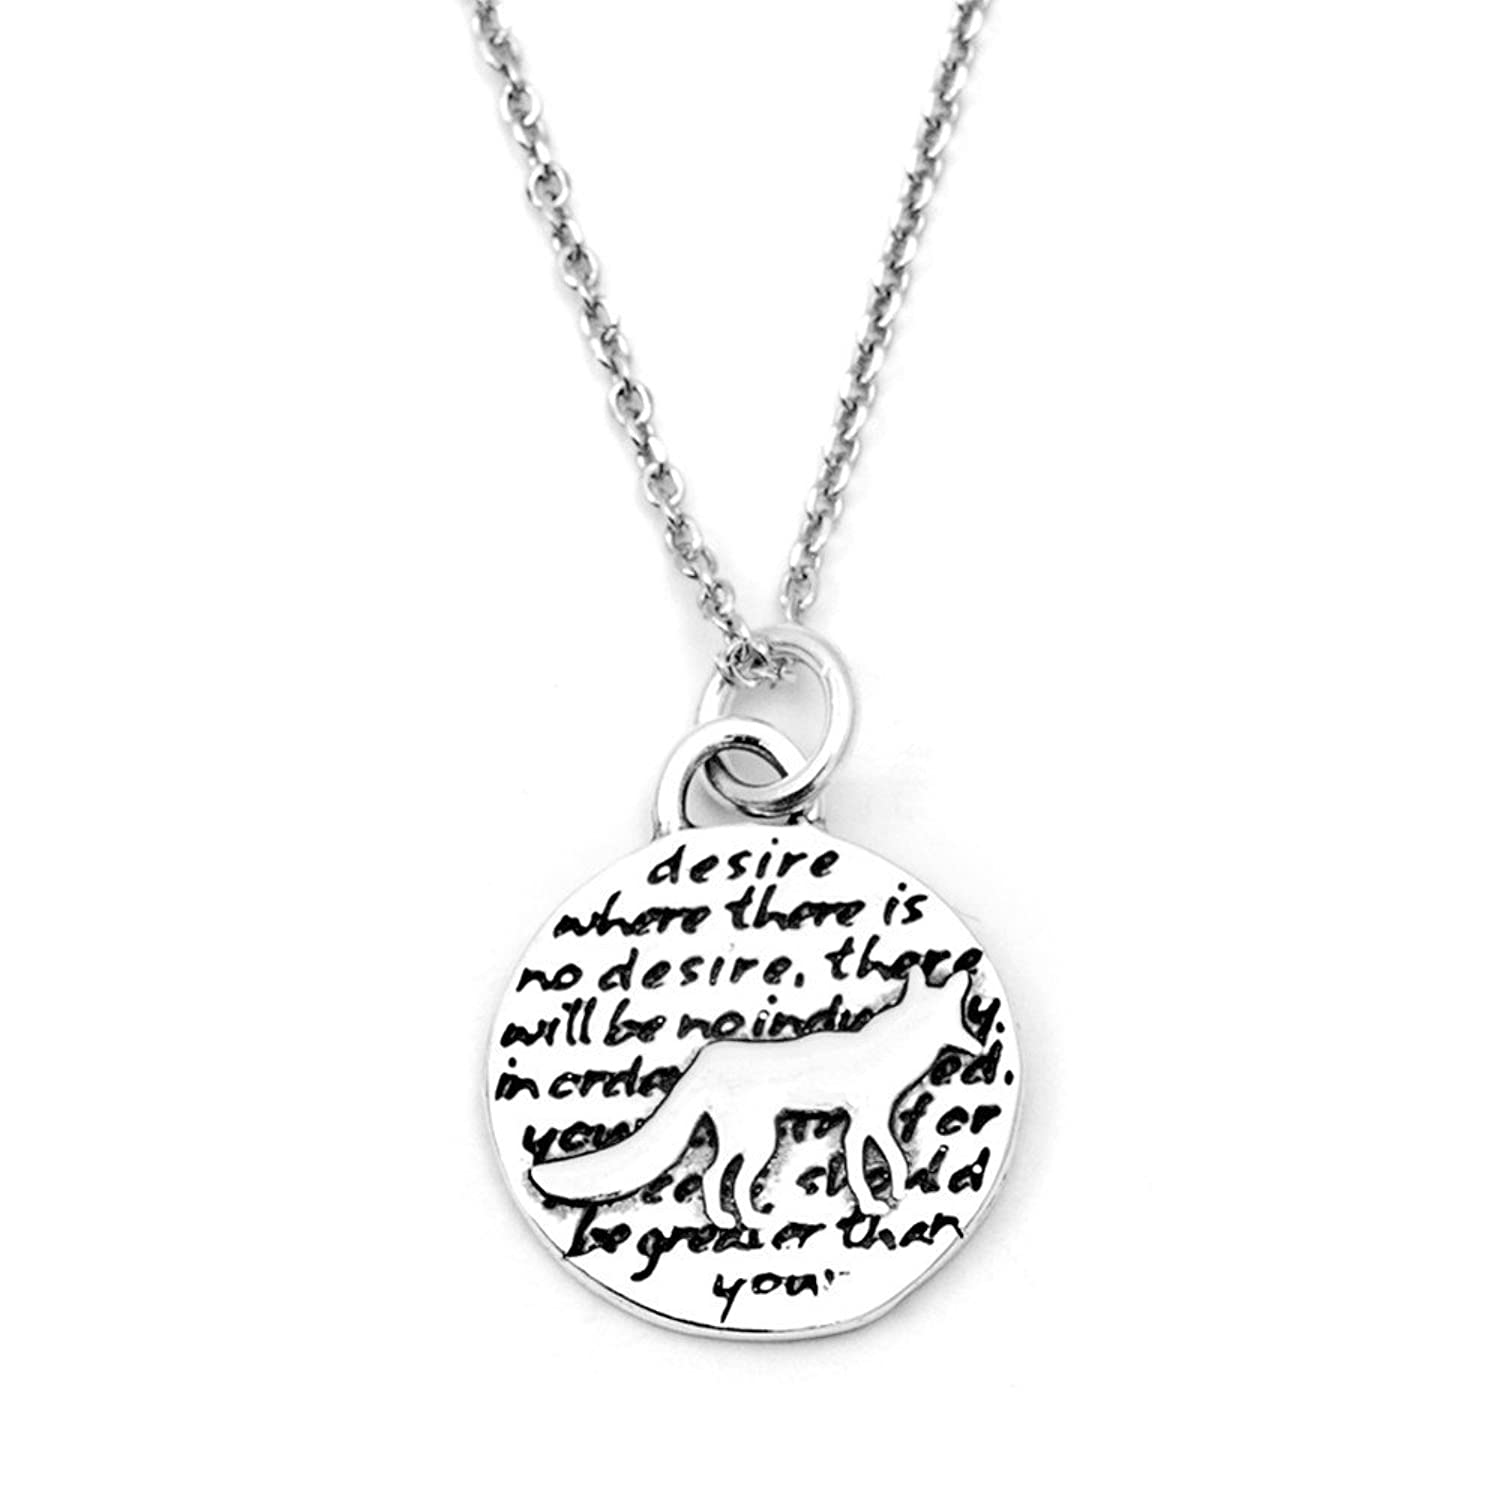 Kevin N Anna Fox (Desire quote) Sterling Silver Small Pendant Necklace